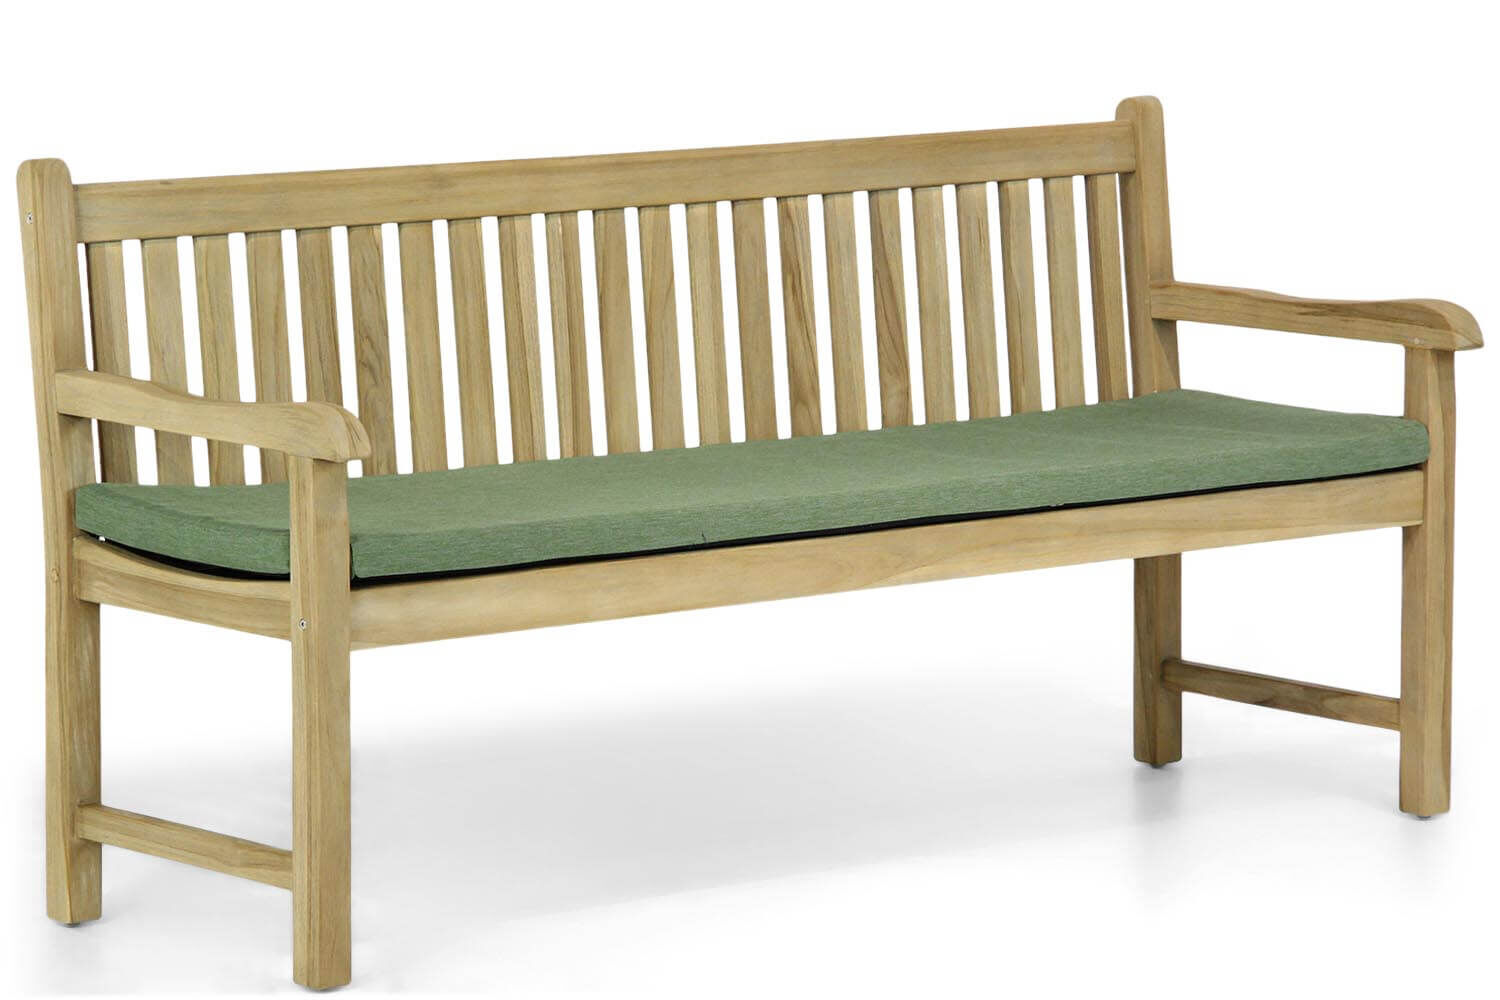 Garden Collections Preston tuinbank teak 180 cm incl. forest green kussen